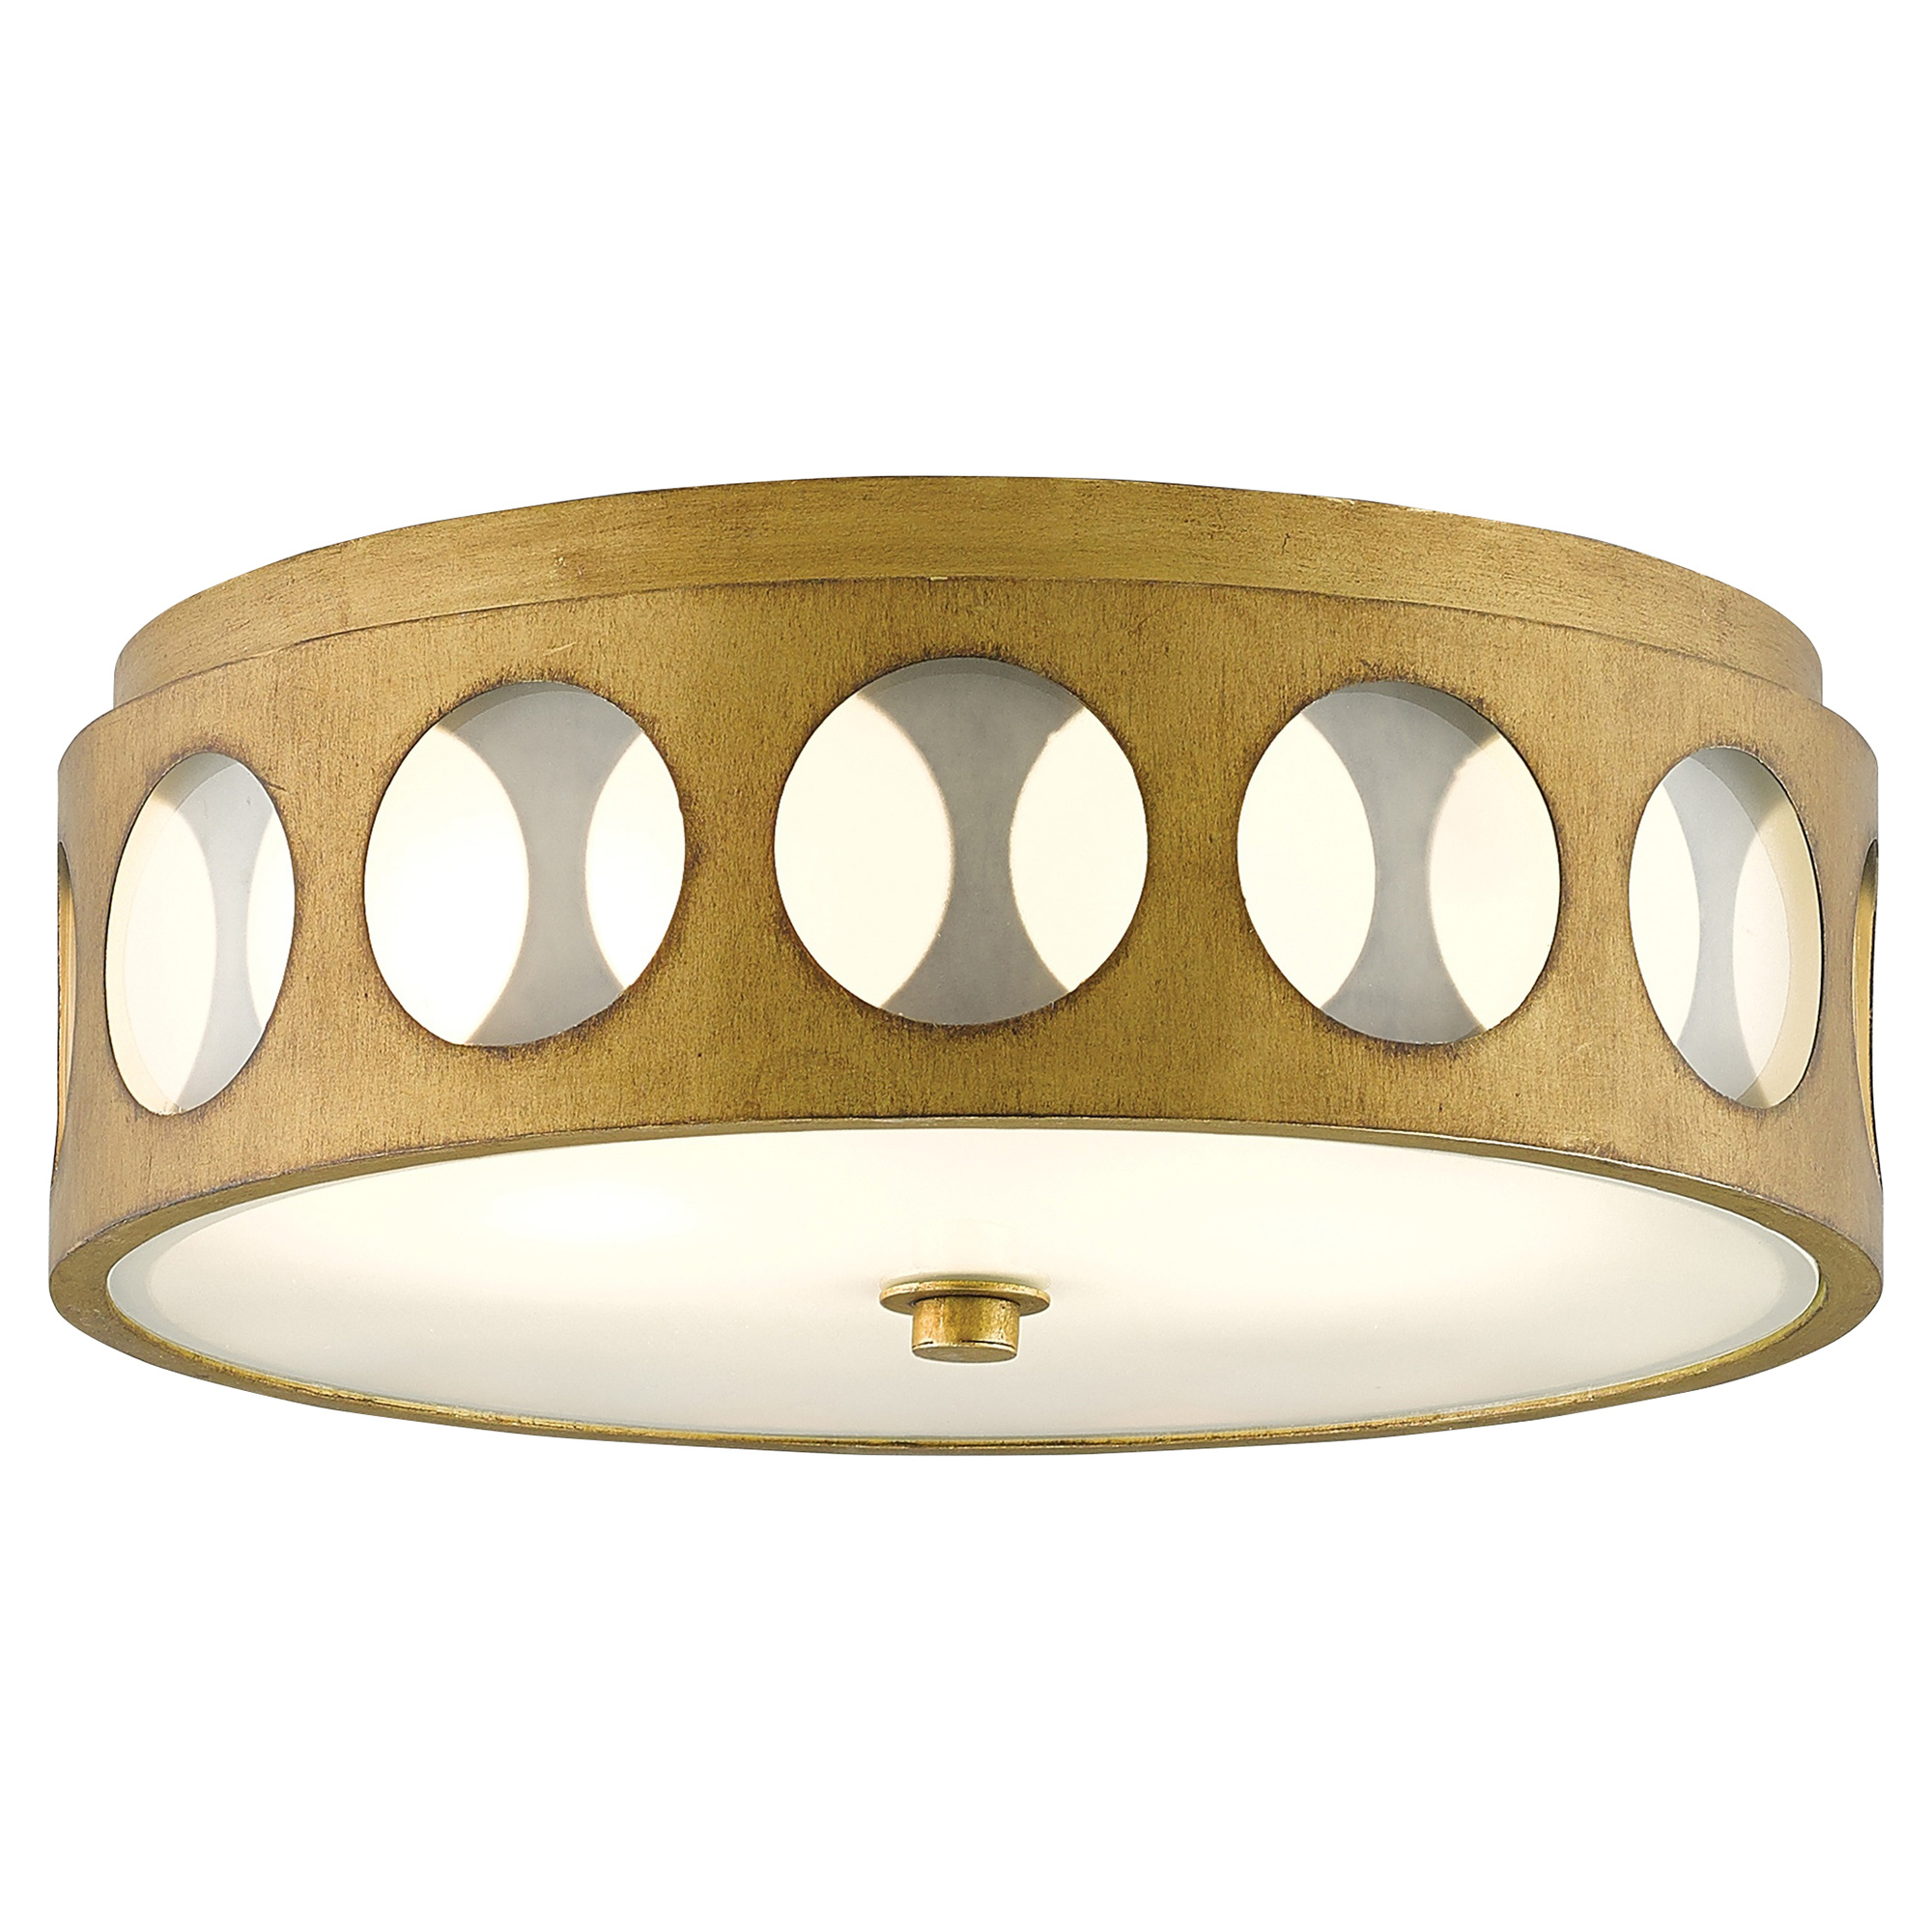 Embry Retro Modern Glass Dot Brass Ceiling Mount